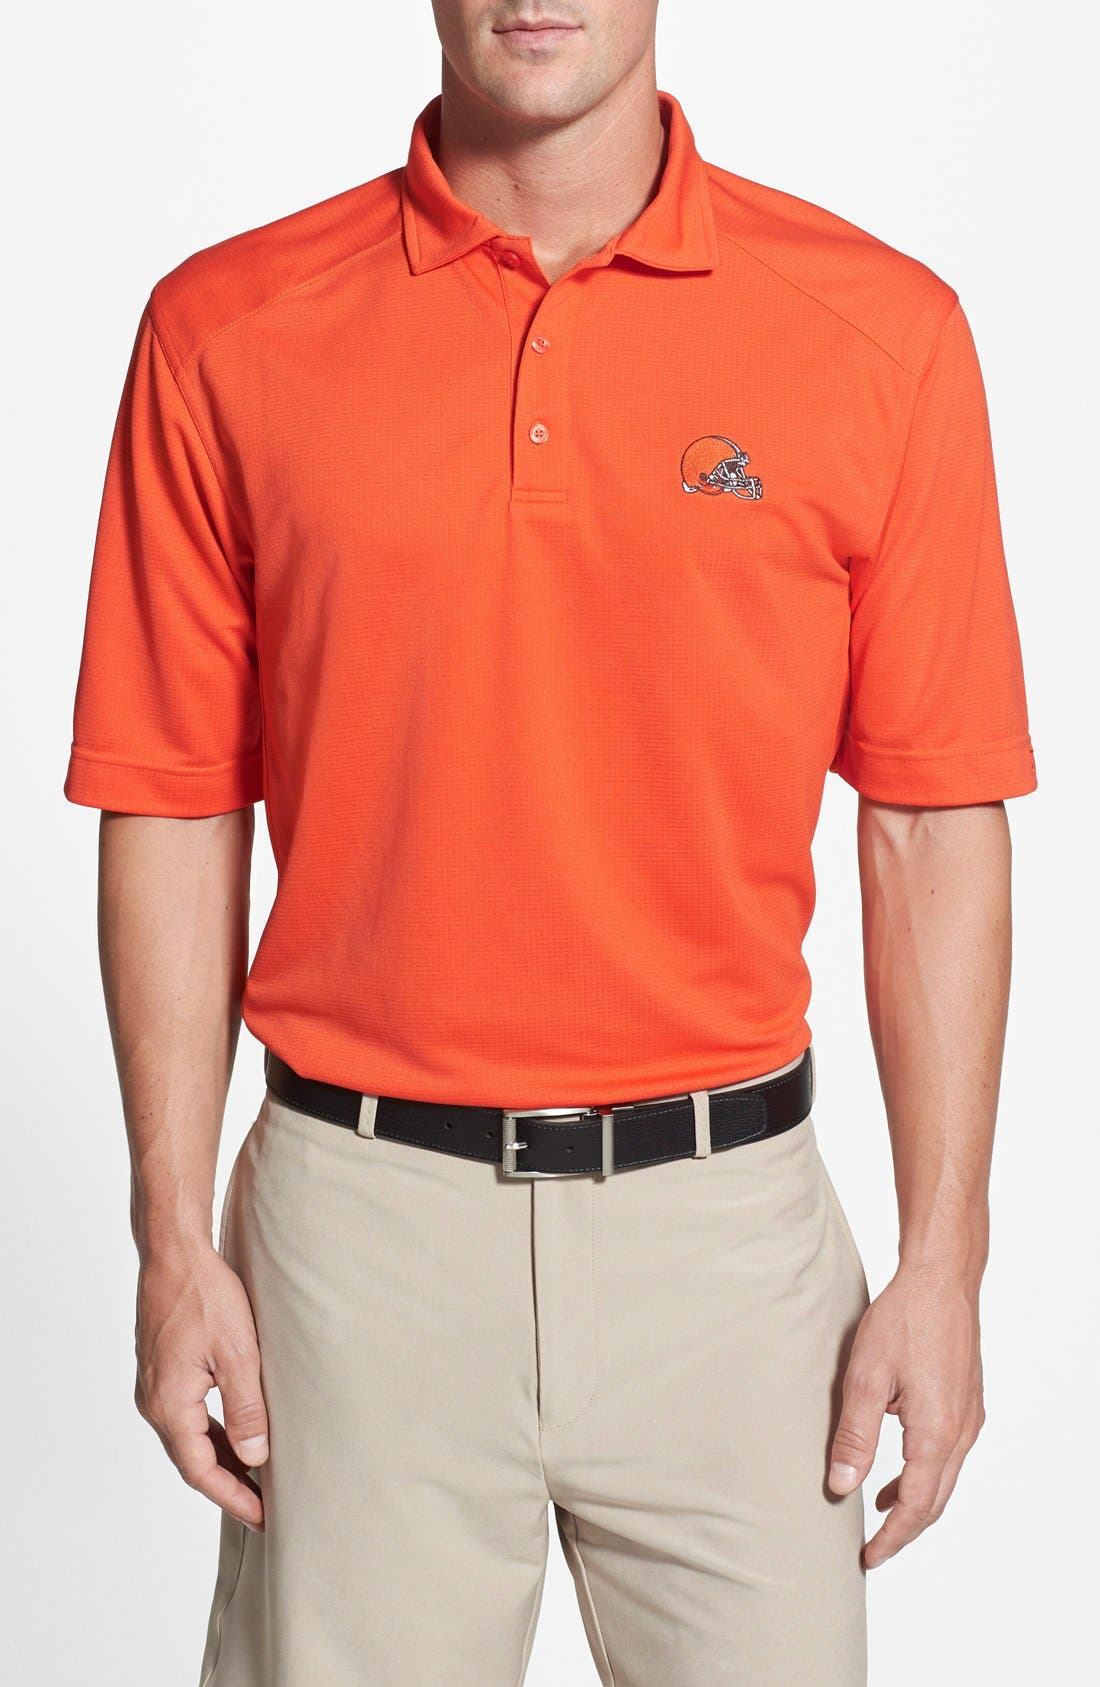 Alternate Image 1 Selected - Cutter & Buck Cleveland Browns - Genre DryTec Moisture Wicking Polo